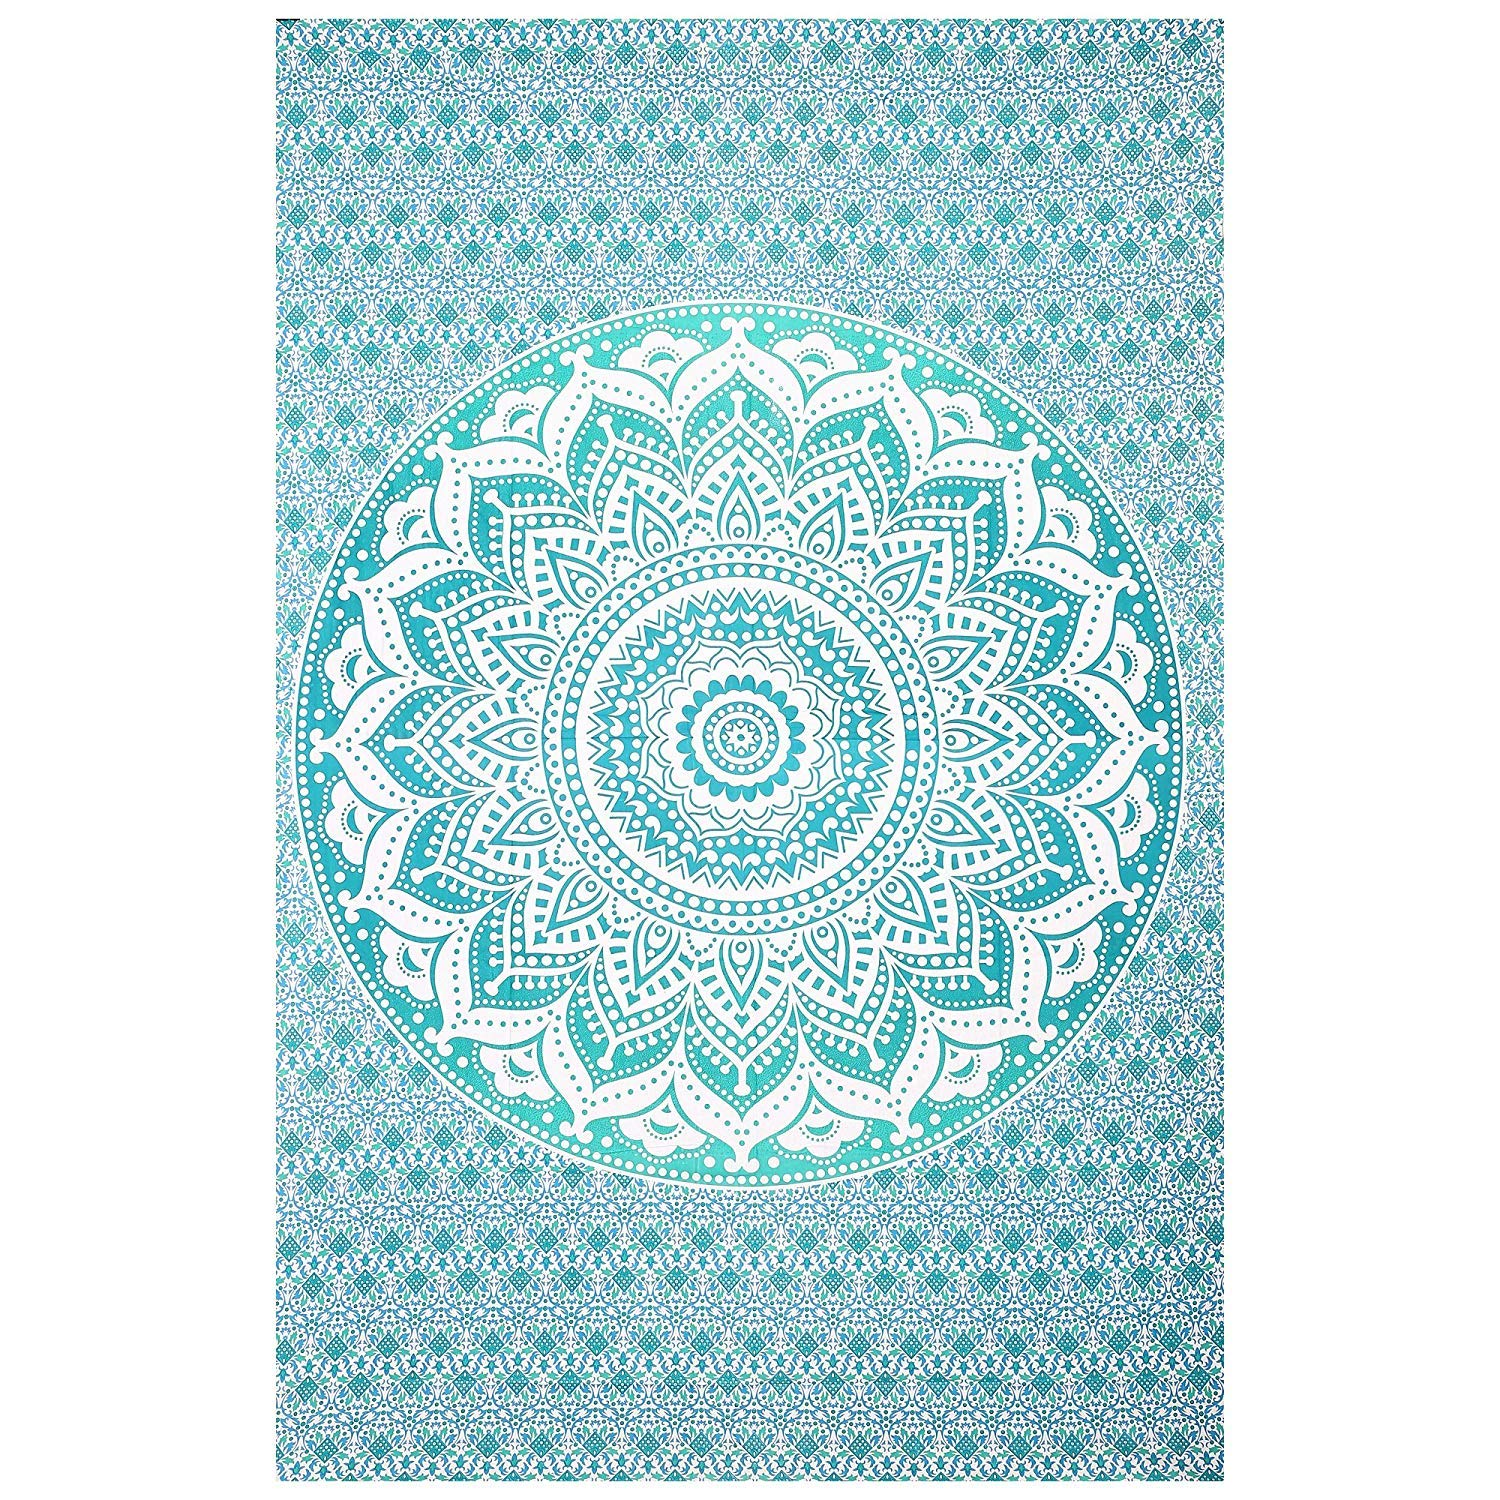 AAKARSHAN Green Ombre Tapestry Blanket Bedding Hippie Psychedelic Tapestries Bohemian Wall Tapestries Dorm Decor Twin Bedspread Bed Cover Bedding Picnic Blanket Curtain AAKRT0007